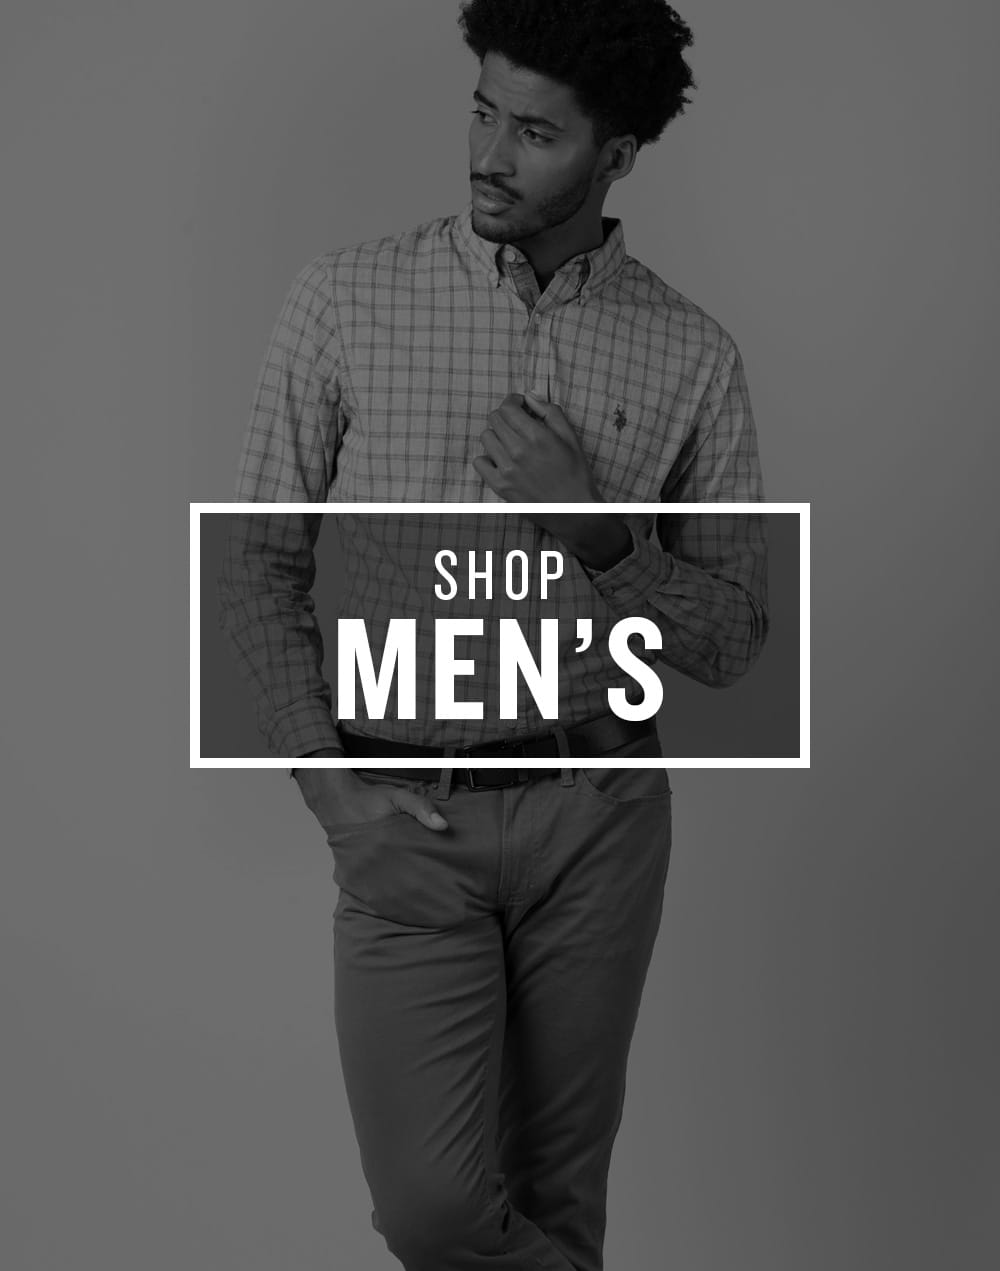 A 2/25 - Shop Men's Sale